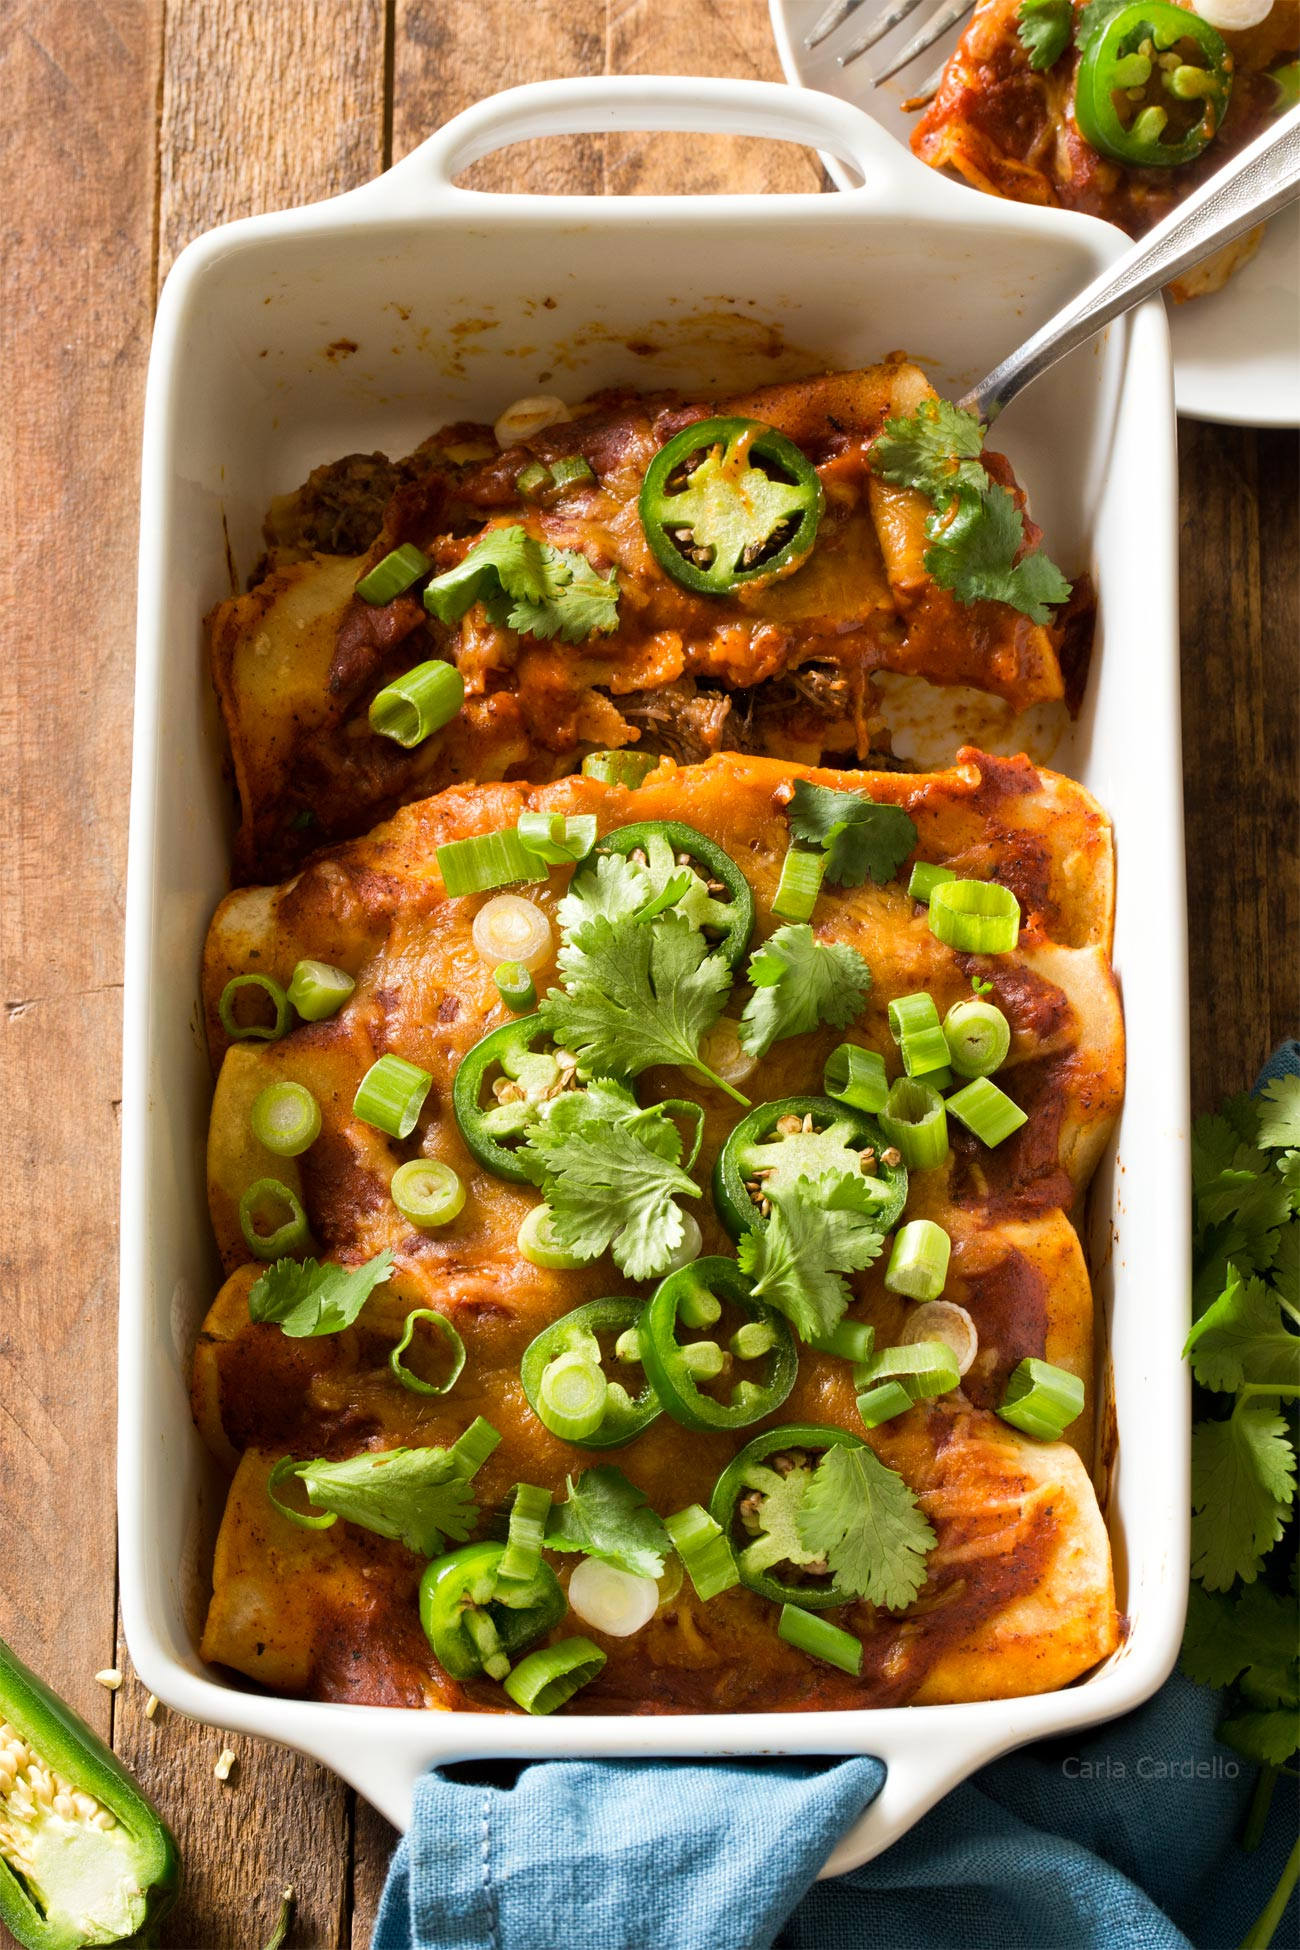 Slow Cooker Beef Enchiladas For Two stuffed with shredded beef, corn, black beans, jalapenos, and topped with cheese and a homemade enchilada sauce